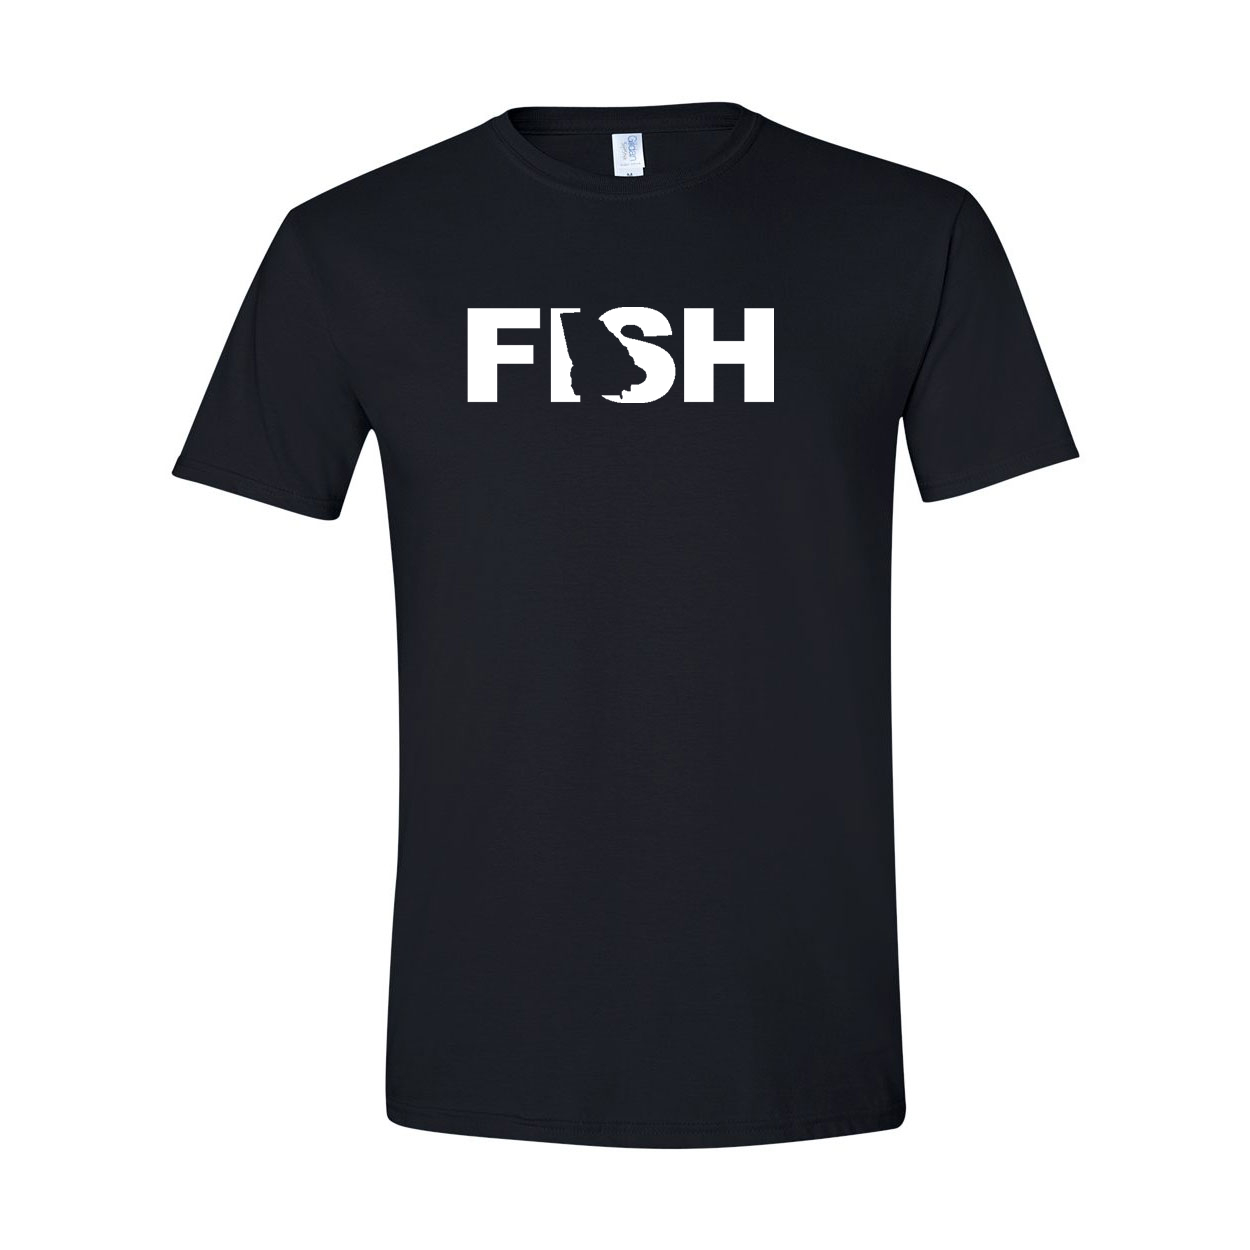 Fish Georgia Classic T-Shirt Black (White Logo)